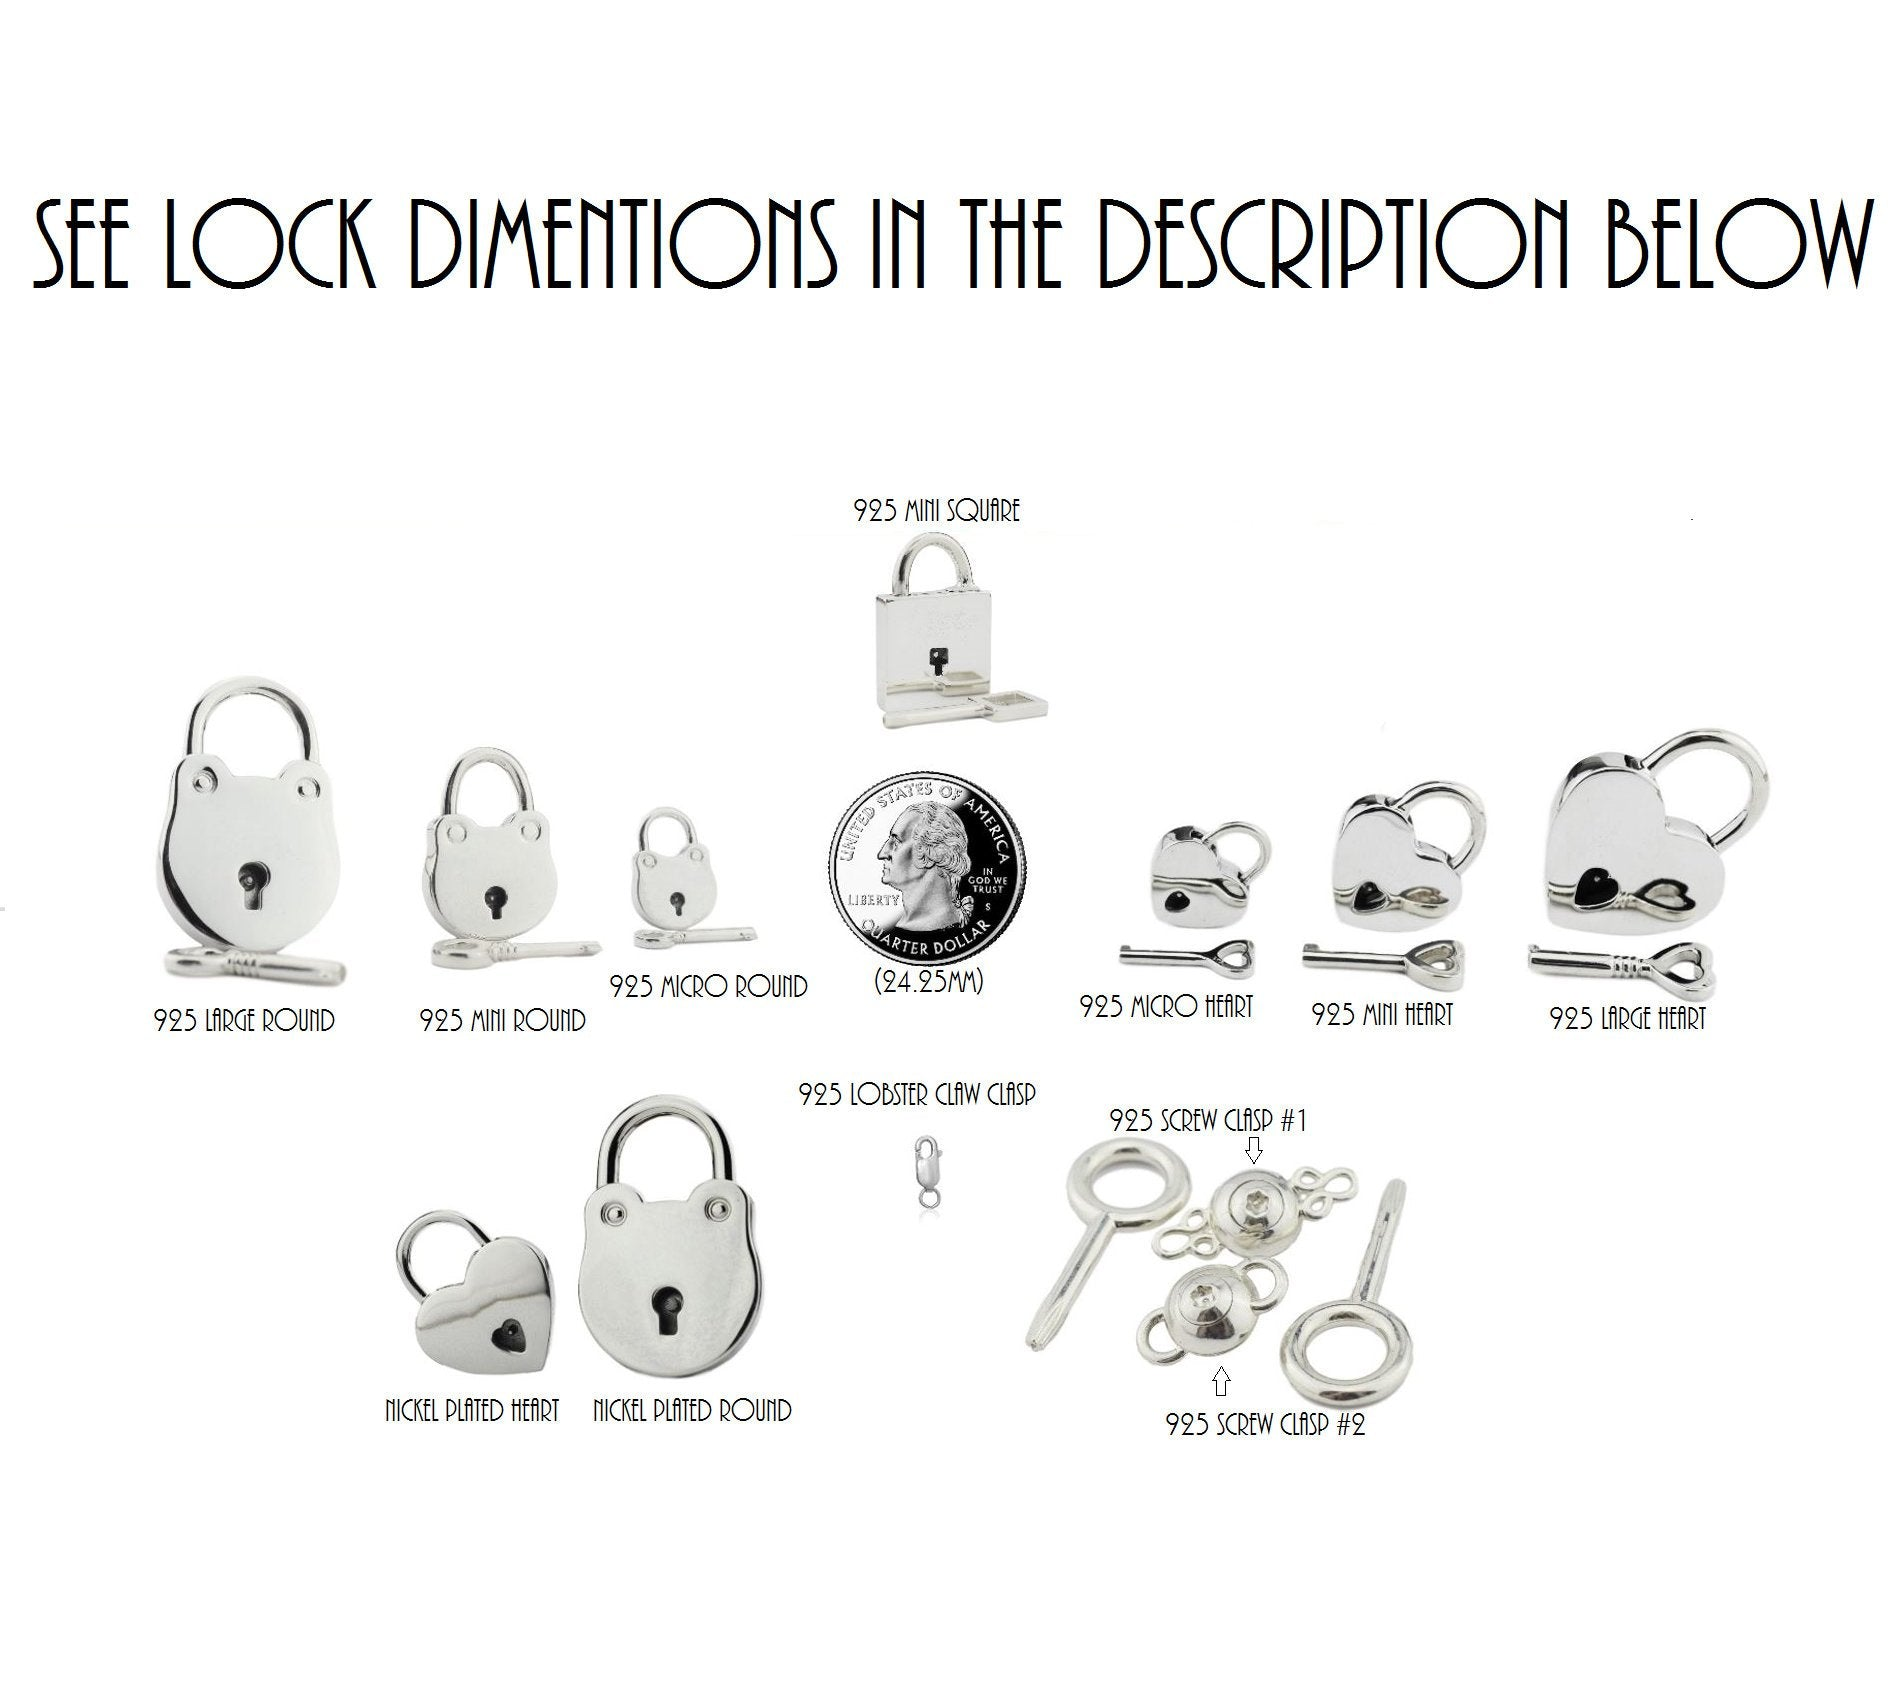 High Quality 925 Sterling Silver Hypoallergenic Locking, lock, padlock BDSM Cuff Day Collar Bondage Sub Kink Slave Submissive ToBeHis Engraving